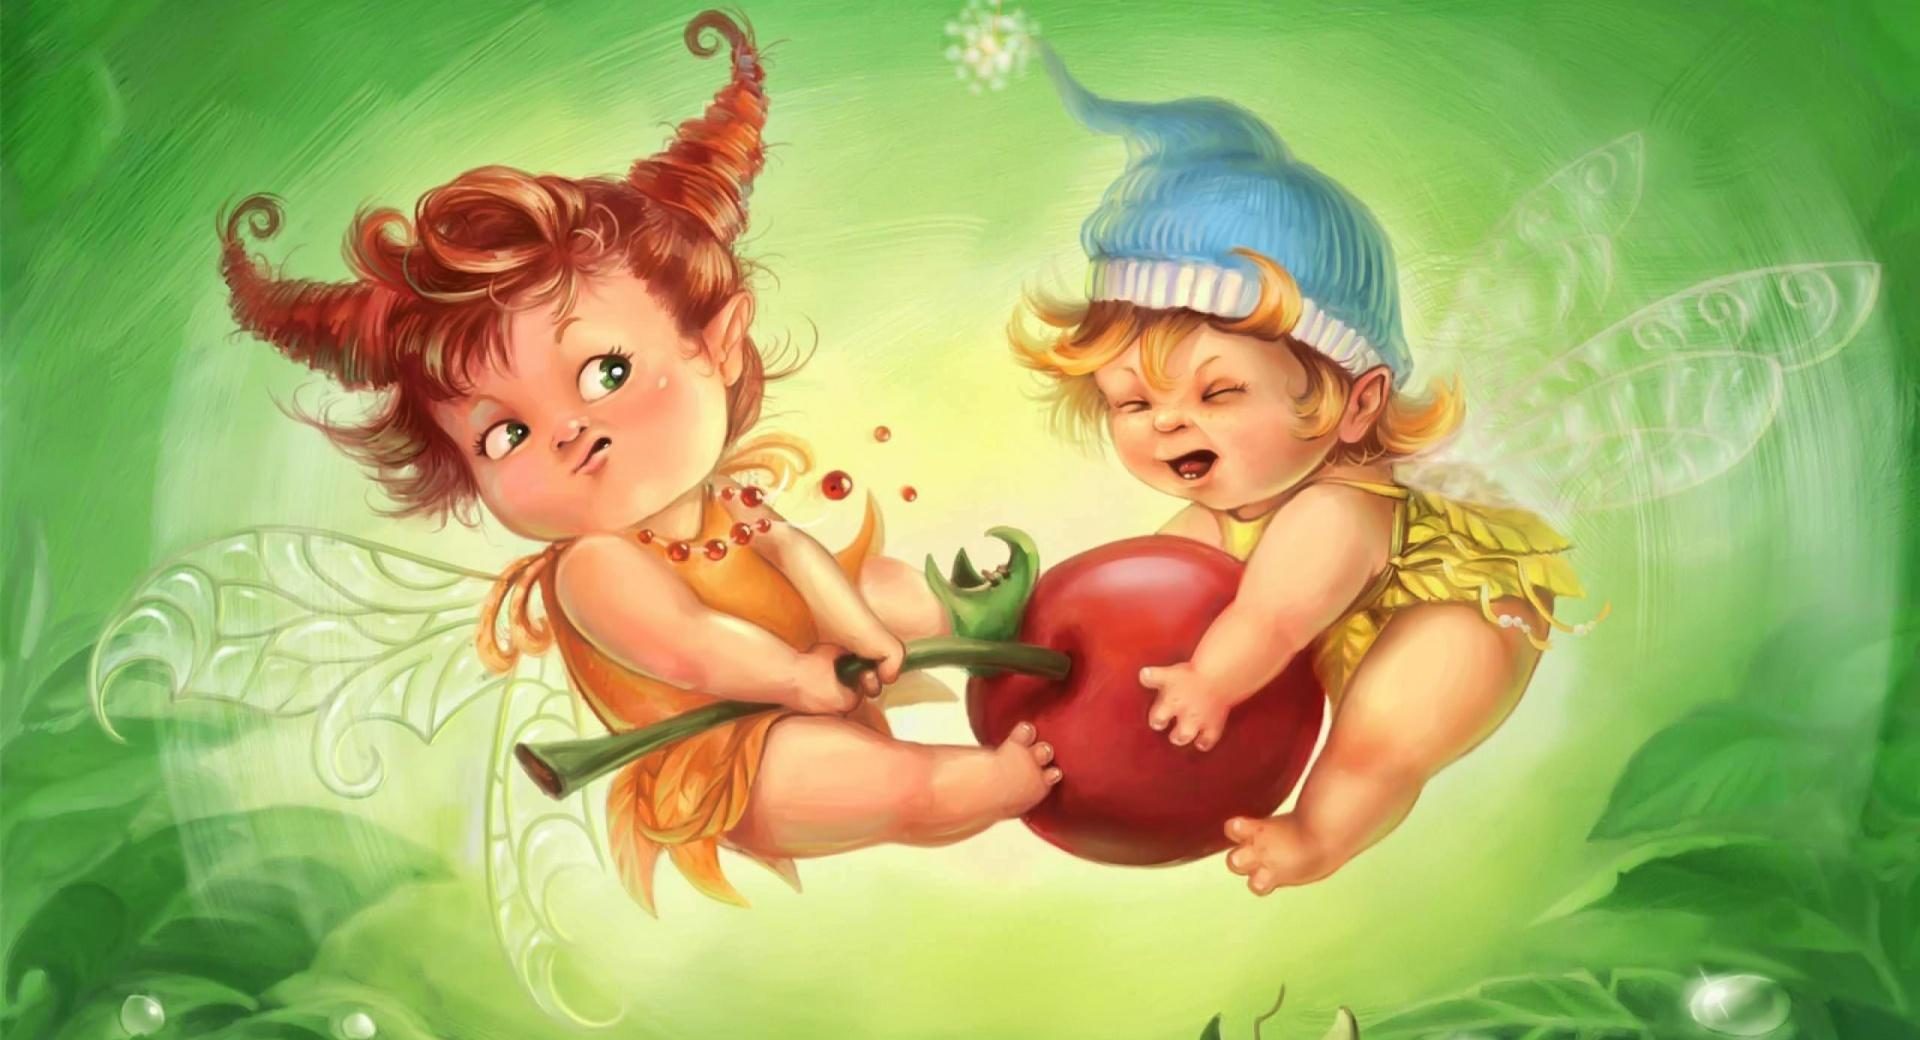 Fairy Children at 320 x 480 iPhone size wallpapers HD quality